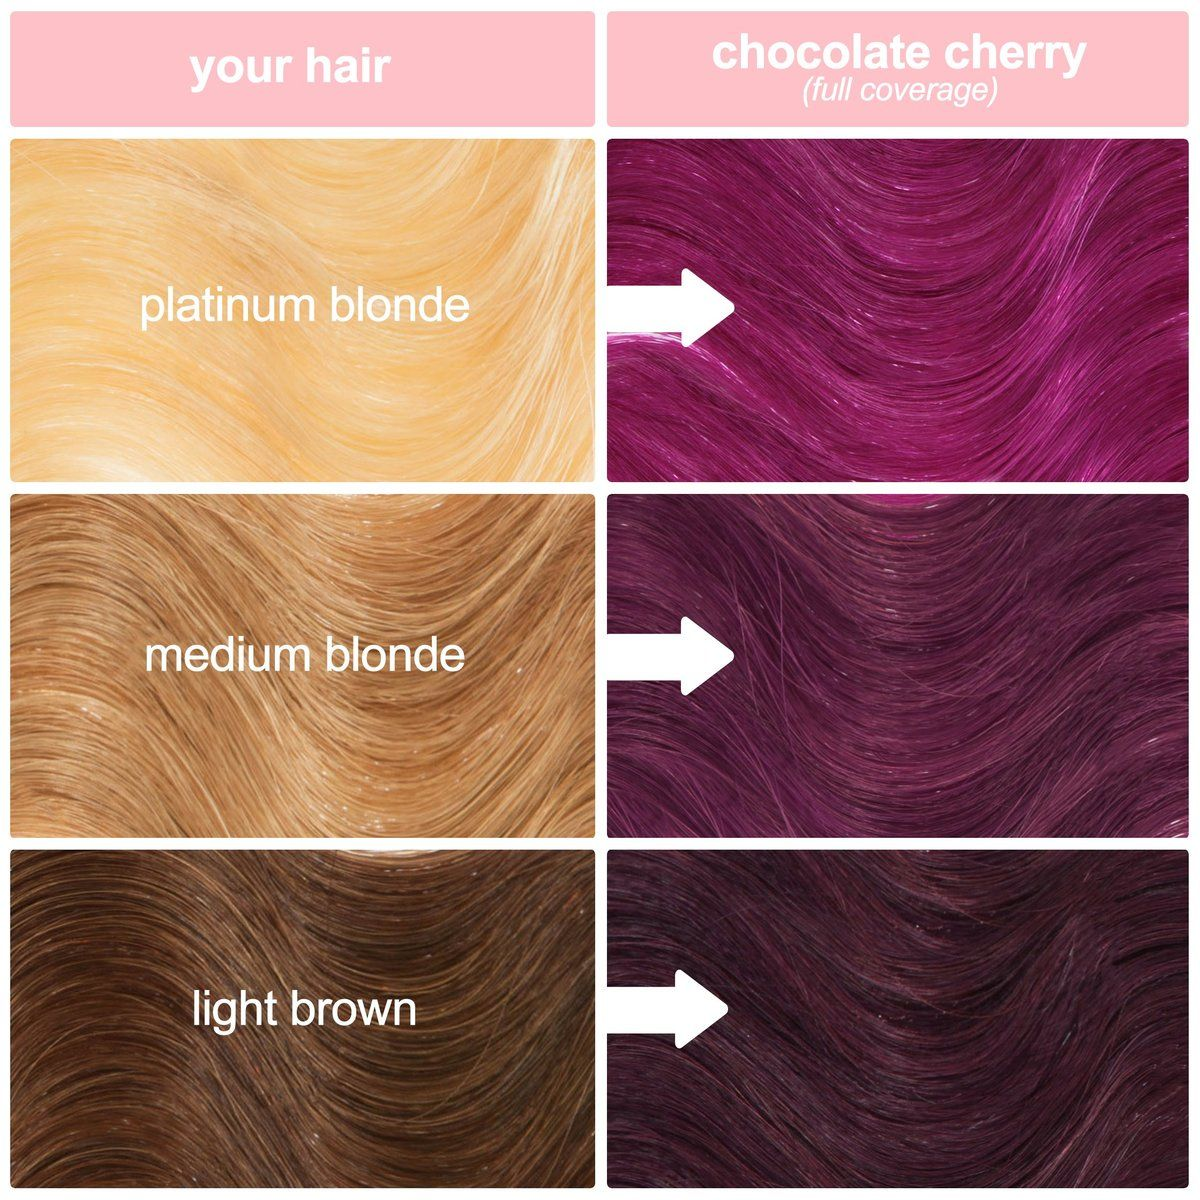 Pin by Elizabeth Butler on ~Hair and Makeup~   Cherry hair colors ...